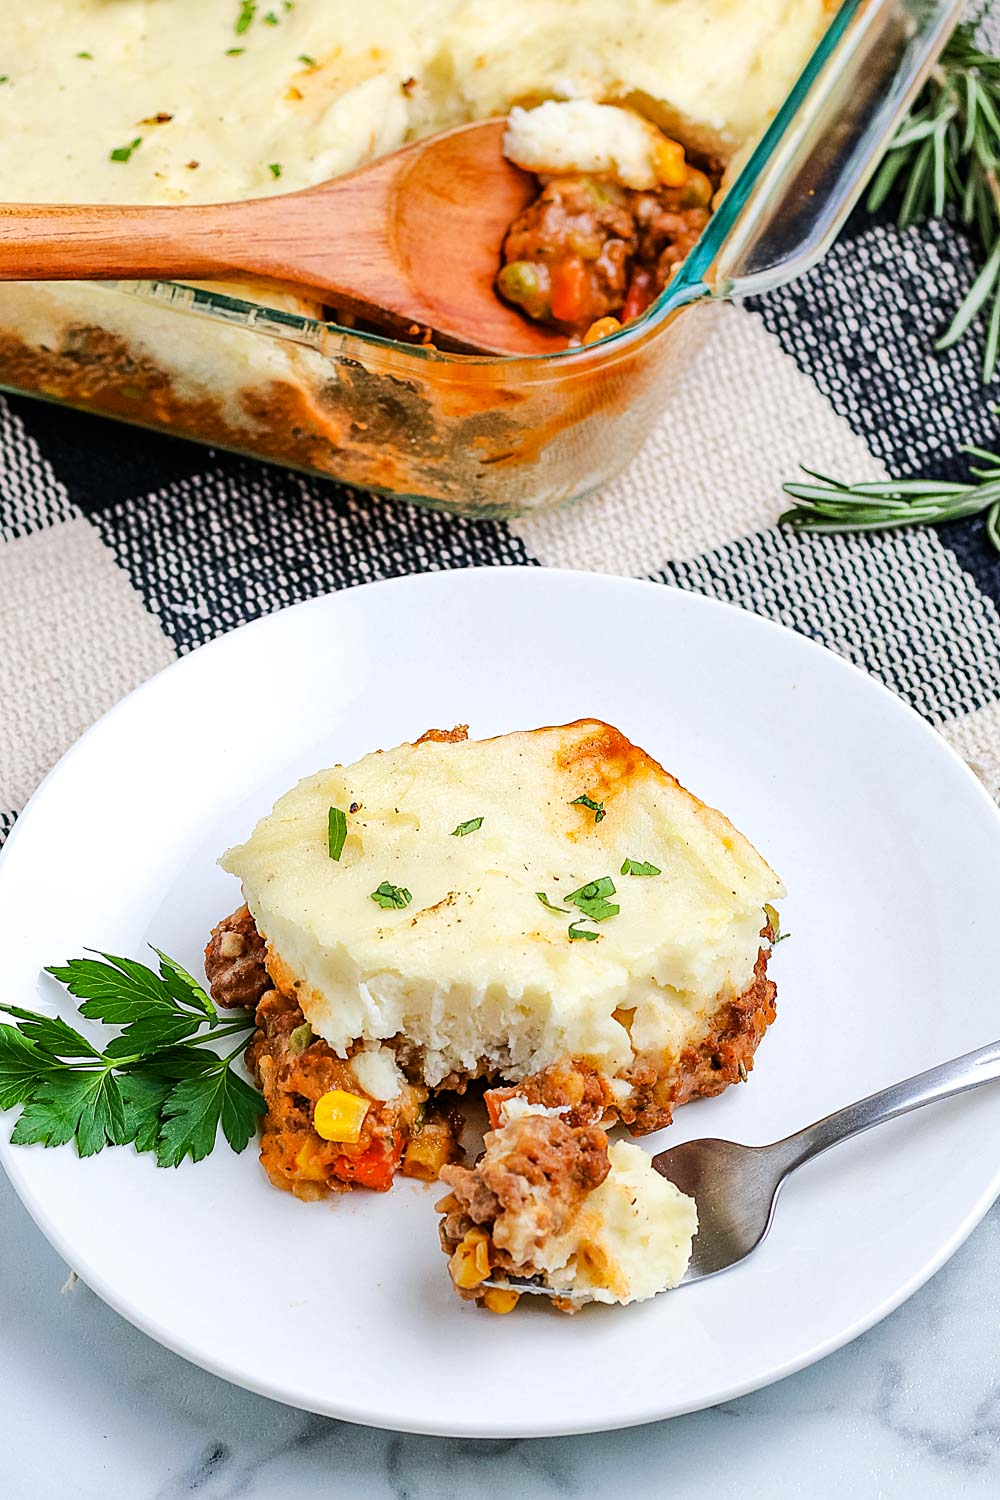 An overhead picture of Shepherd's Pie on a plate and in a casserole dish.